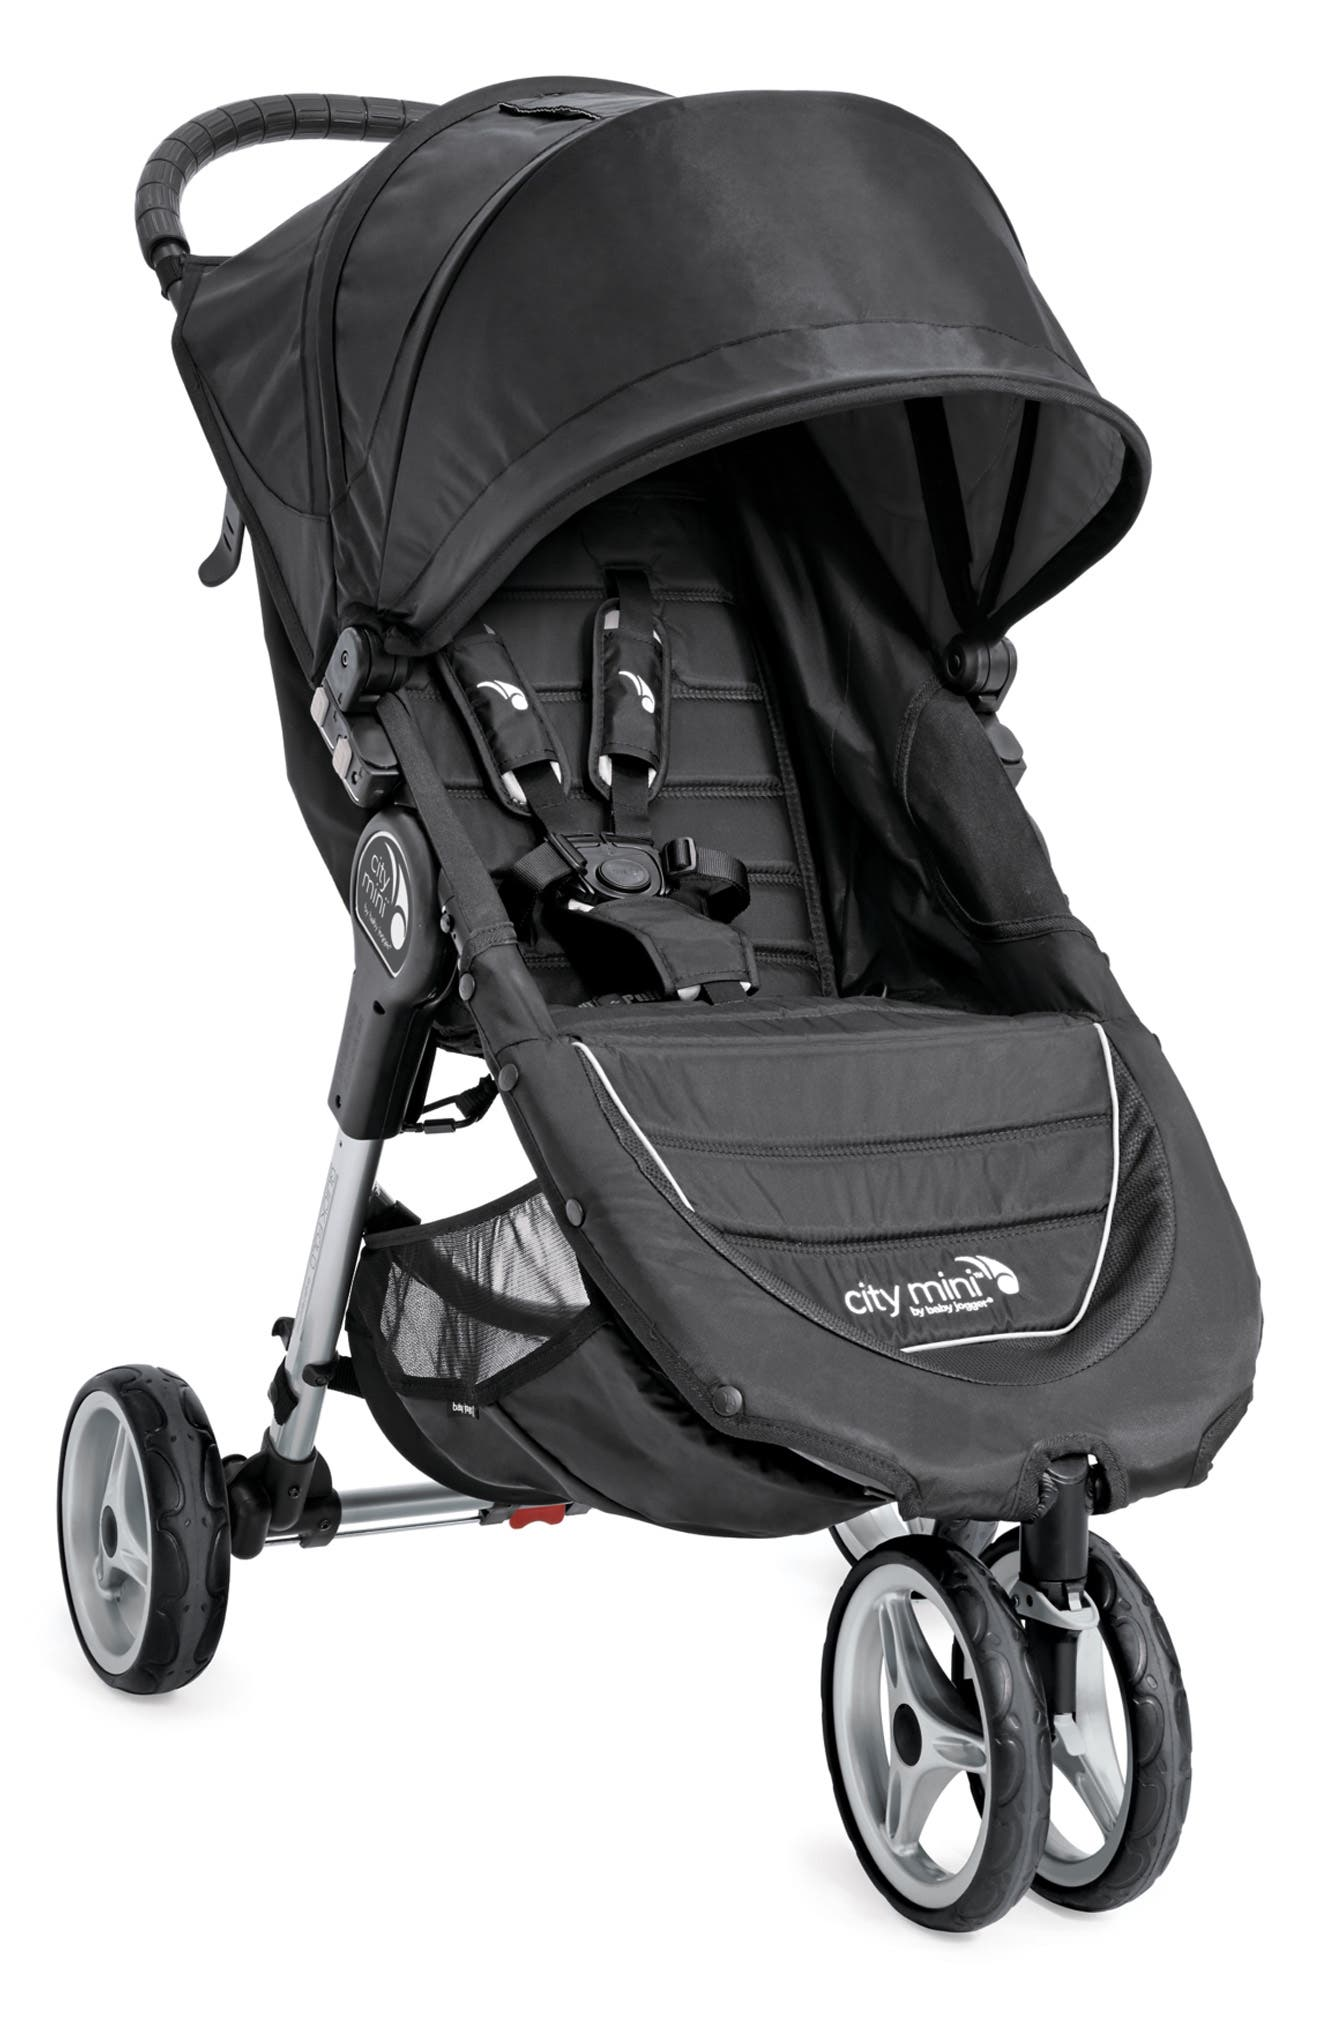 Alternate Image 1 Selected - Baby Jogger 'City Mini®' Stroller